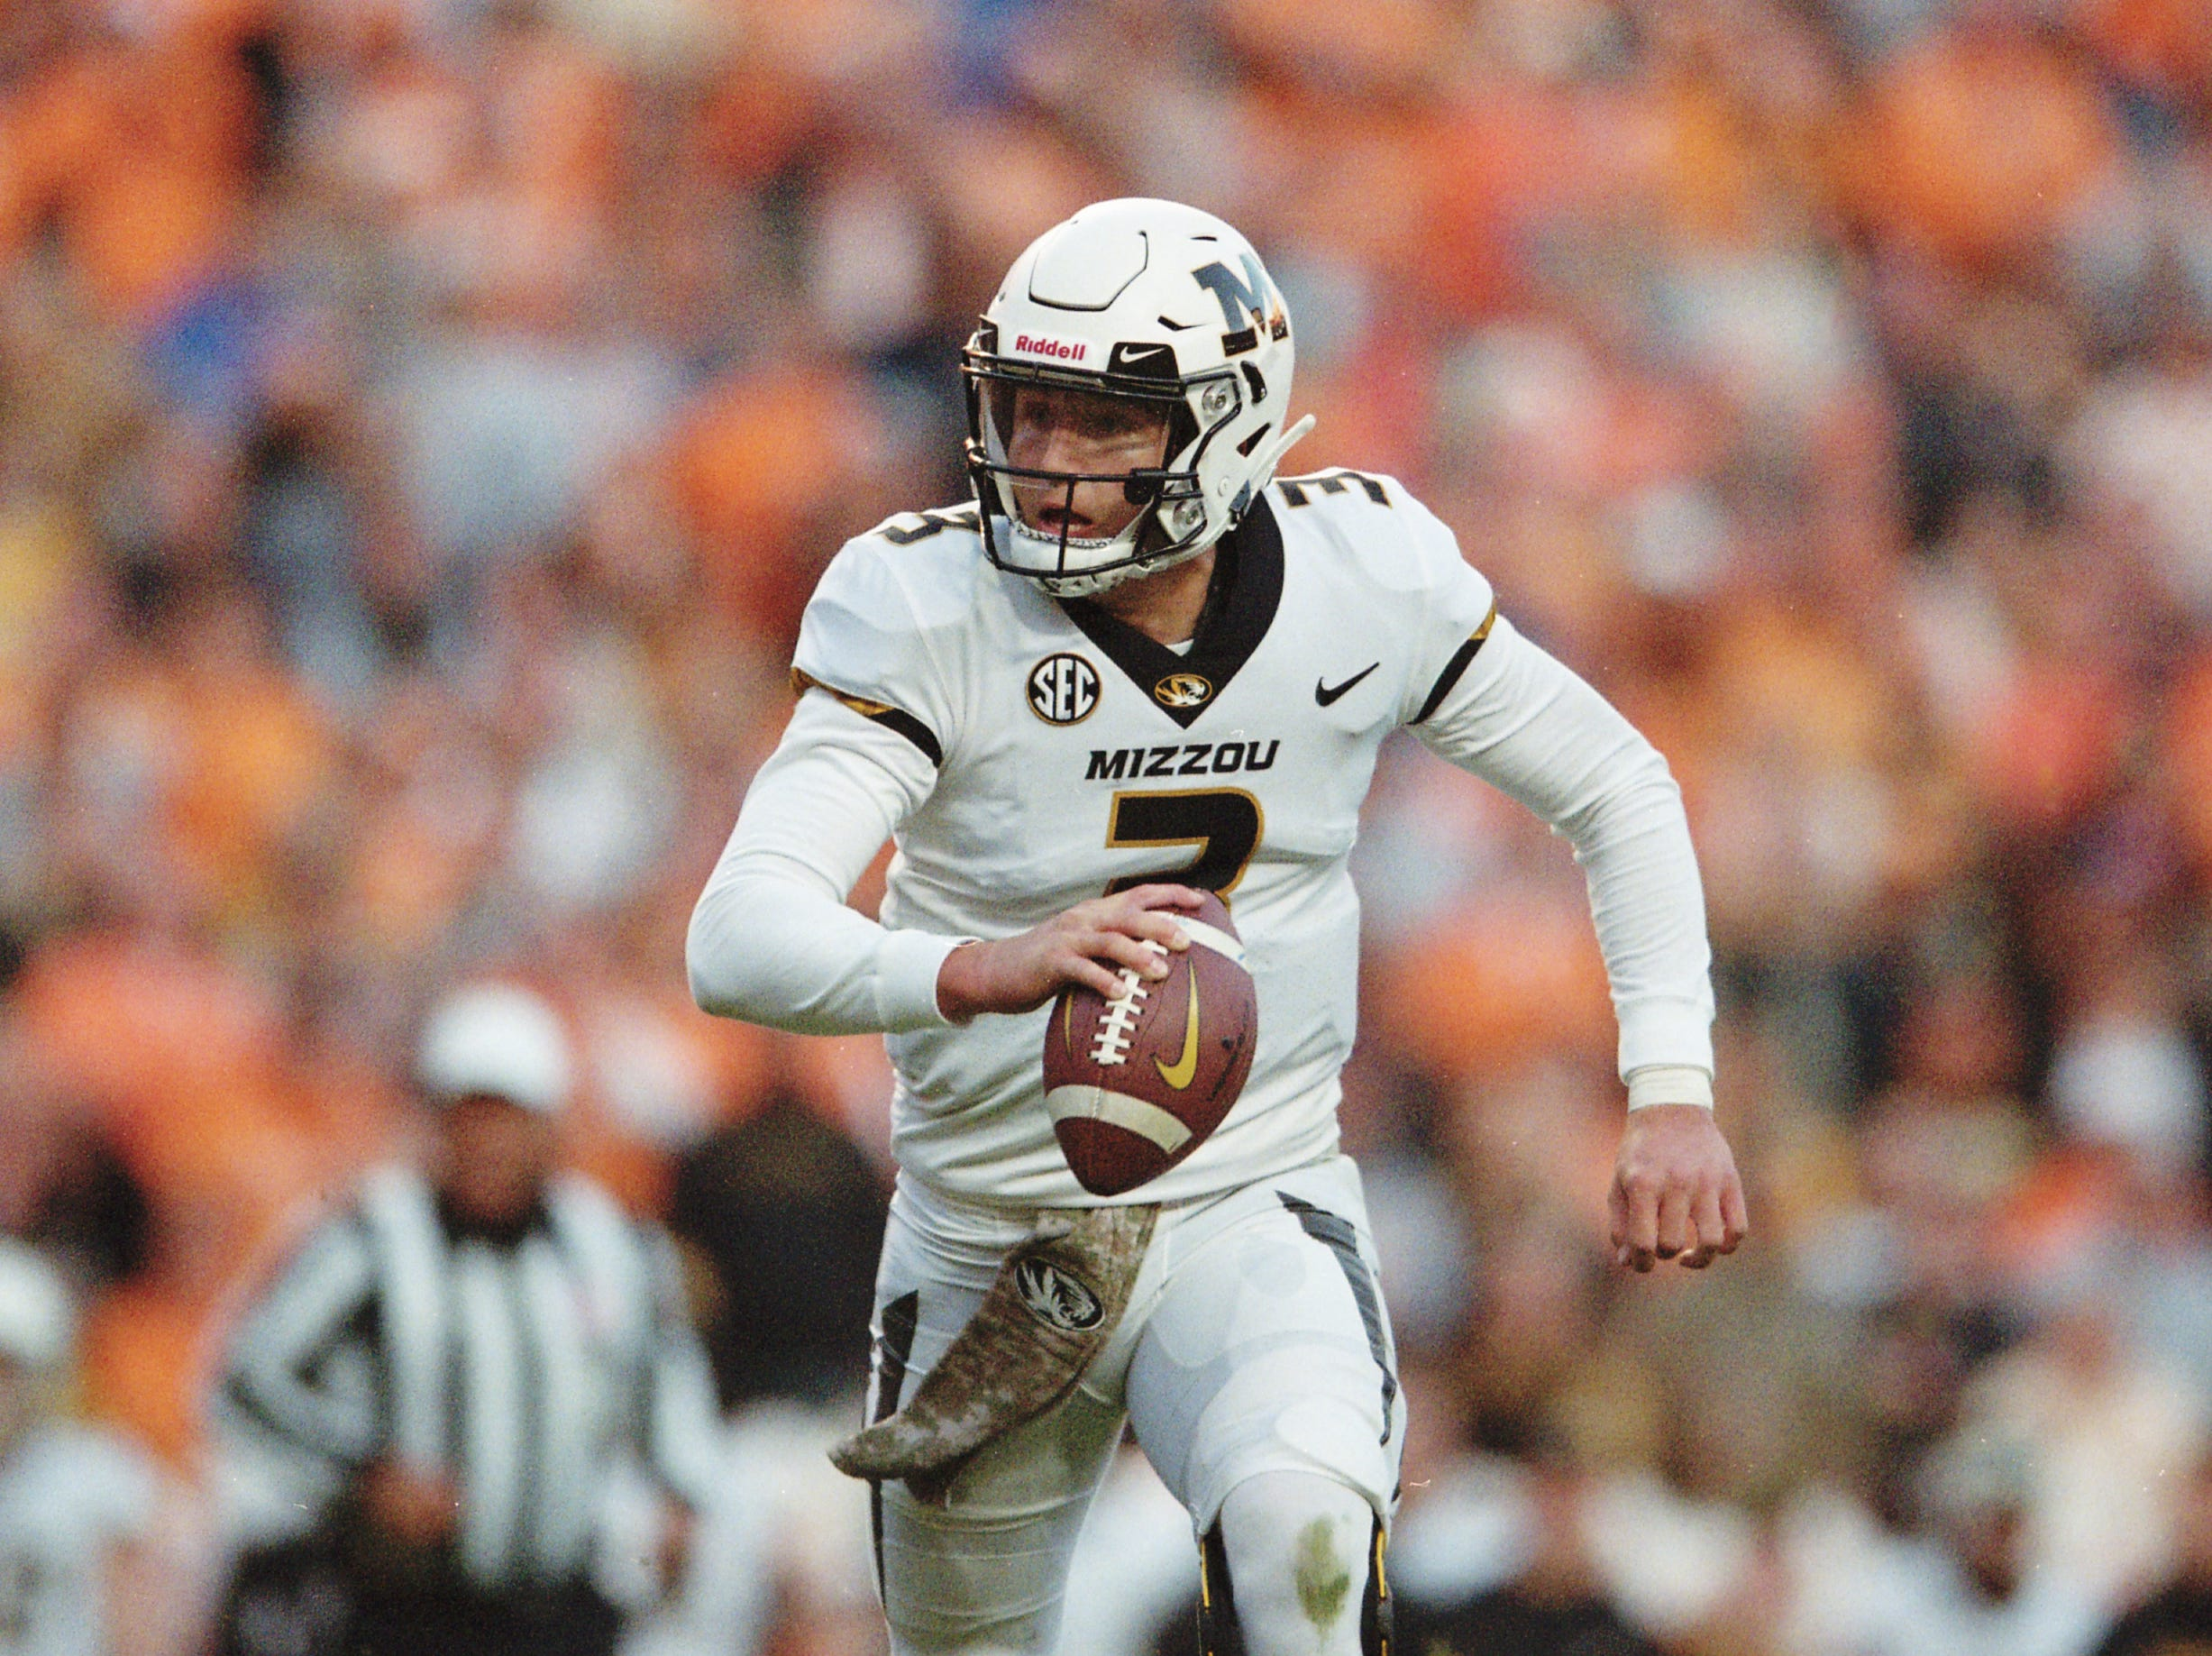 Missouri quarterback Drew Lock (3) looks to pass during a game between Tennessee and Missouri at Neyland Stadium in Knoxville, Tennessee on Saturday, November 17, 2018.